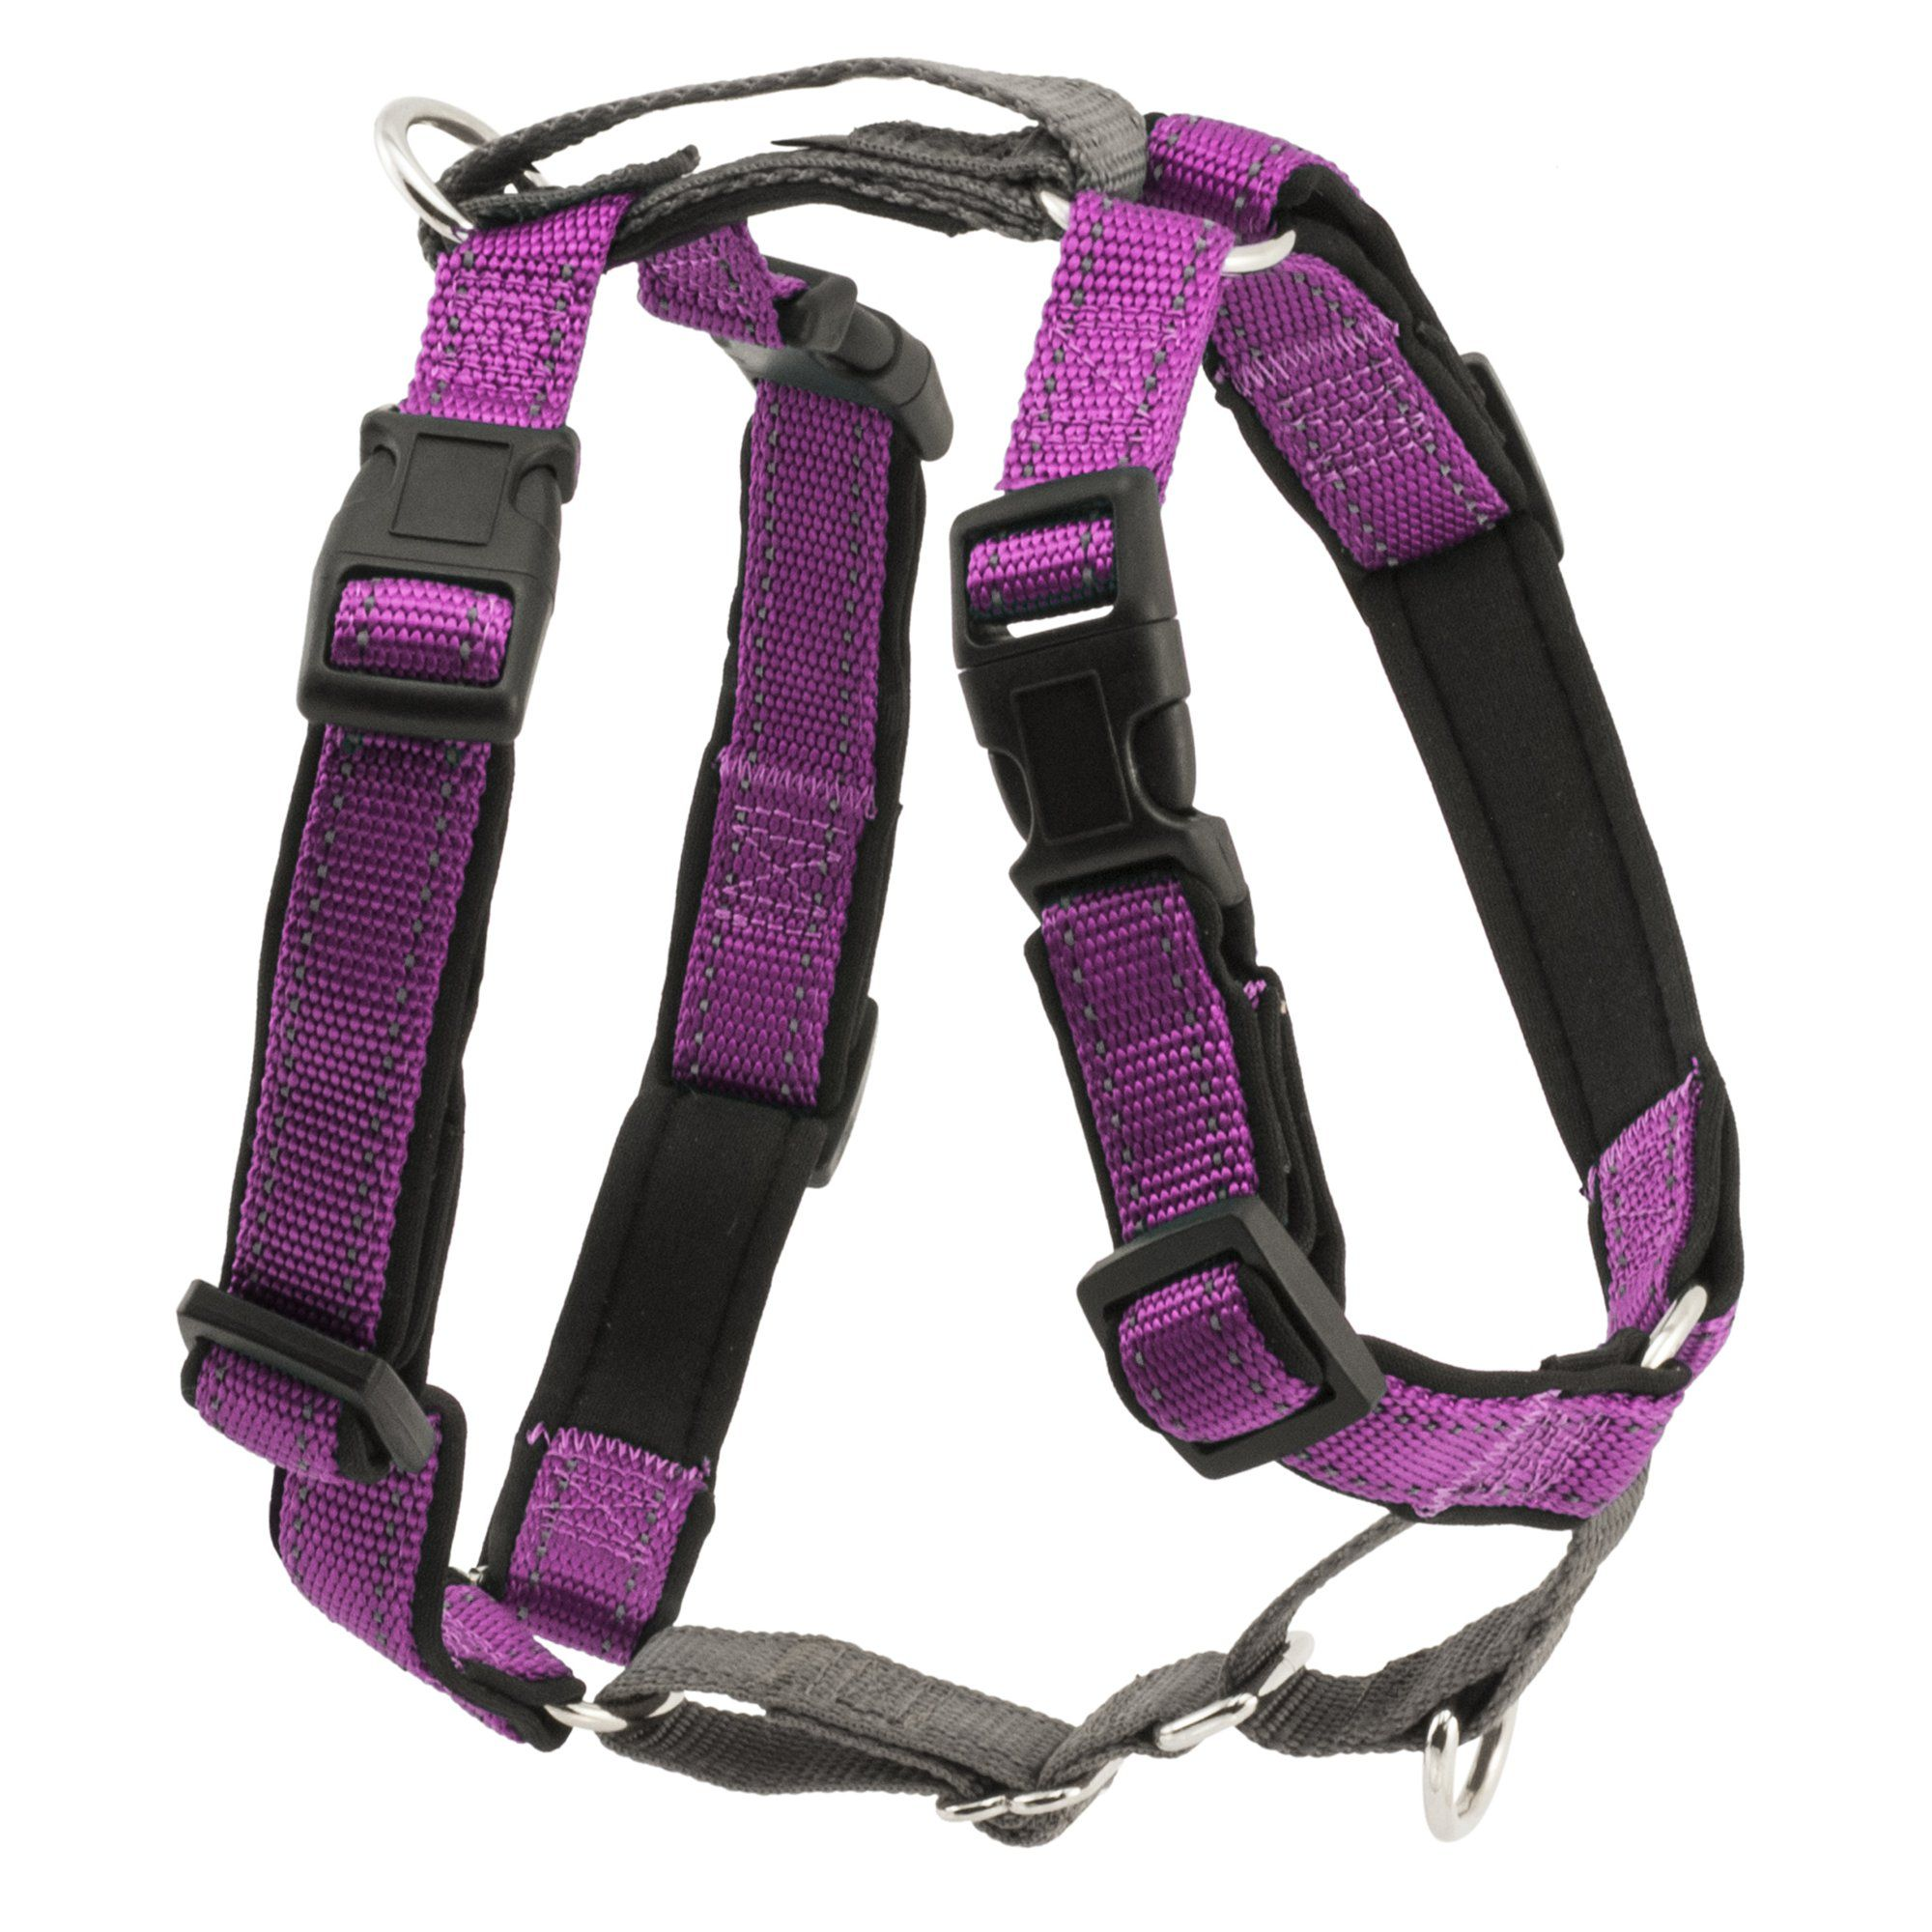 Petsafe 3 In 1 Harness Small Plum Red Grey Dog Harness Red Grey Dog Chews